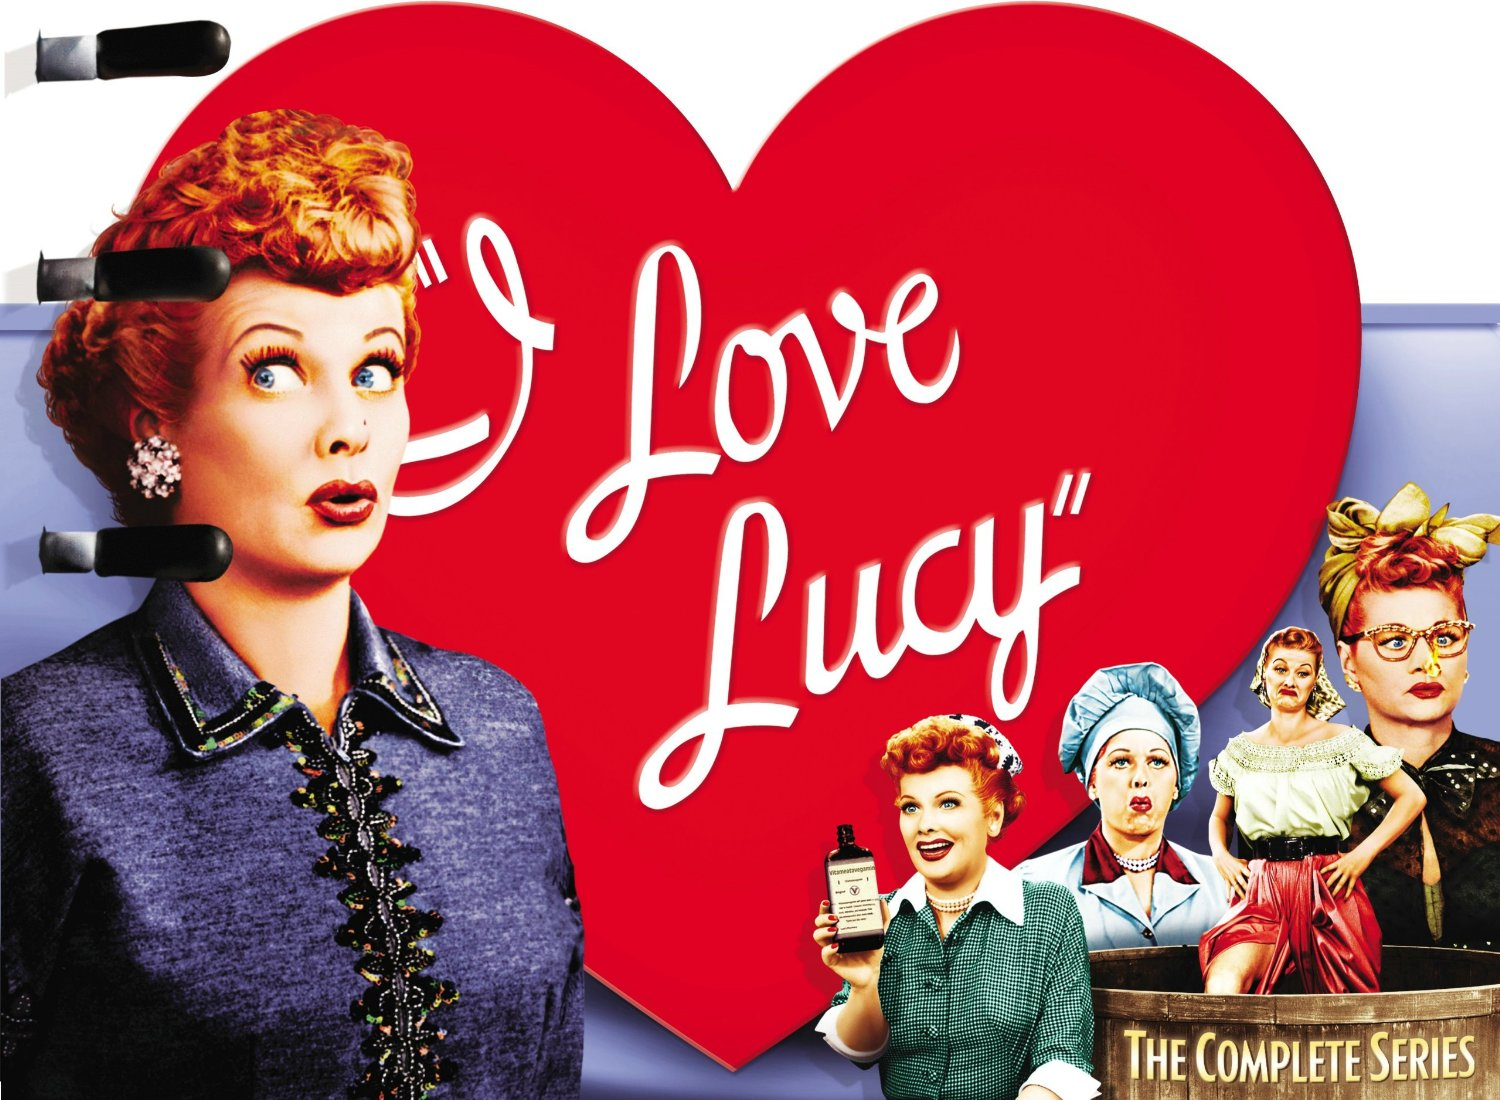 Exclusive Lucille Ball Collection will be presented at